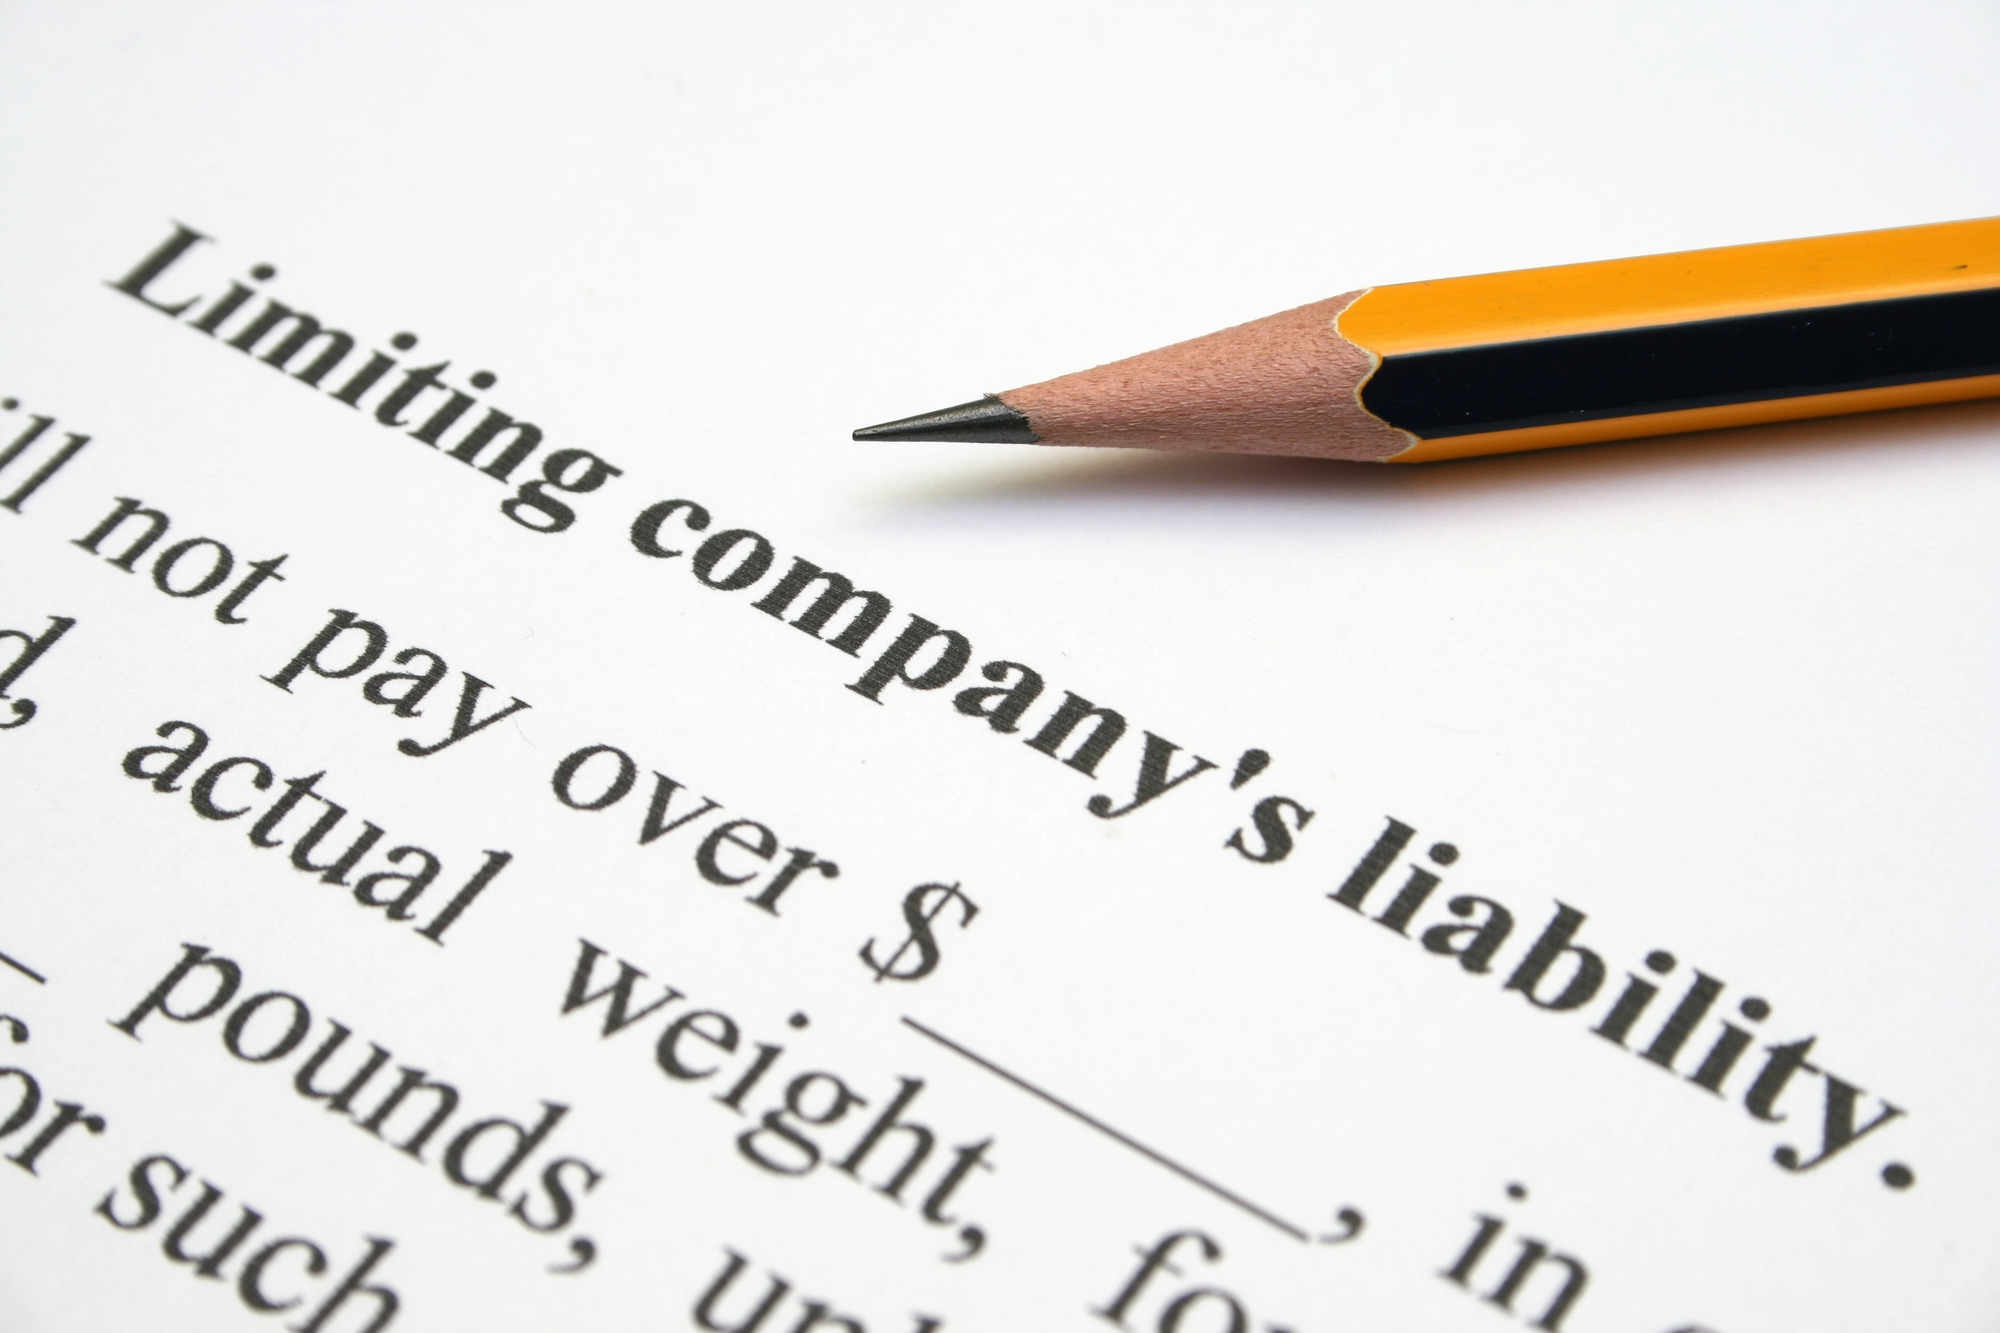 LLC, limited liability, protect business